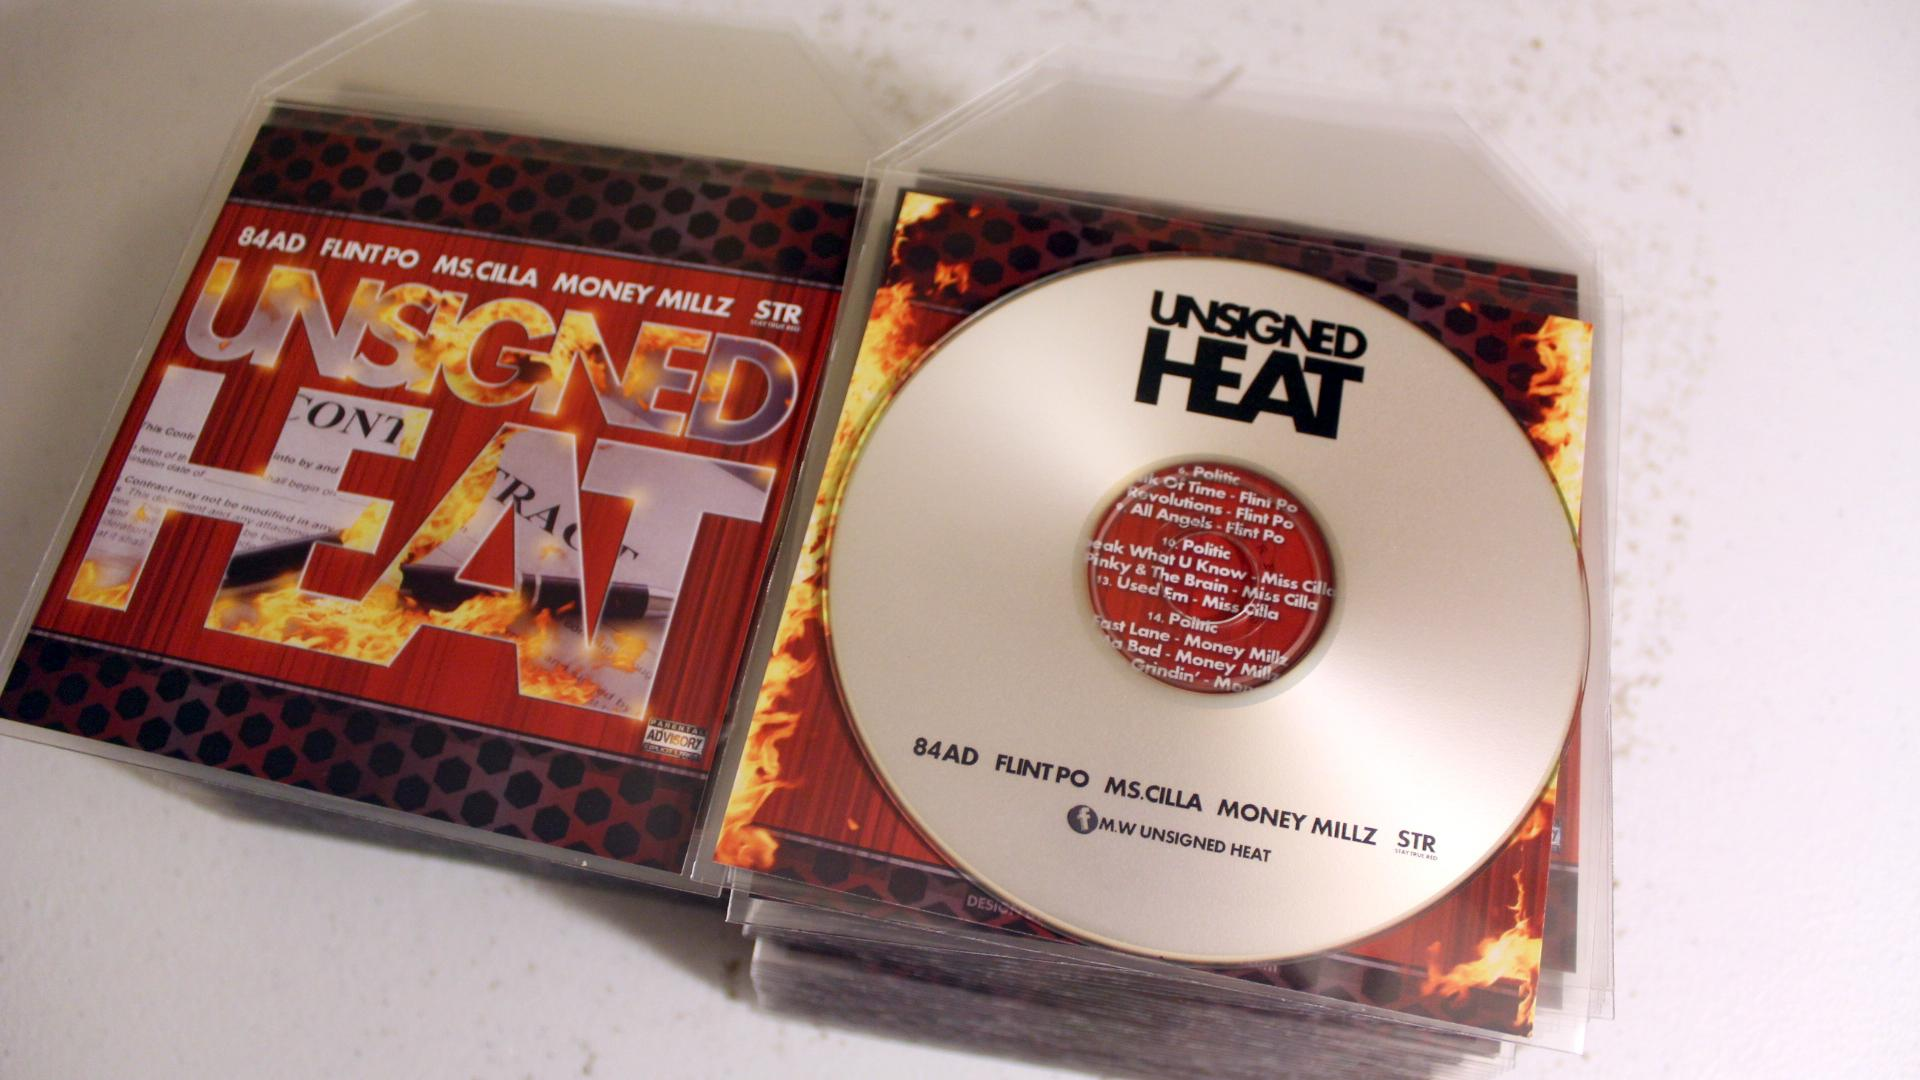 1 Cd Duplication On Twitter Unsigned Heat Cd Unsigned Heat Gold Package 80 Per Cd Duplication Http T Co Cnfiipsedp Mixtapeduplication Http T Co Nidko2paux